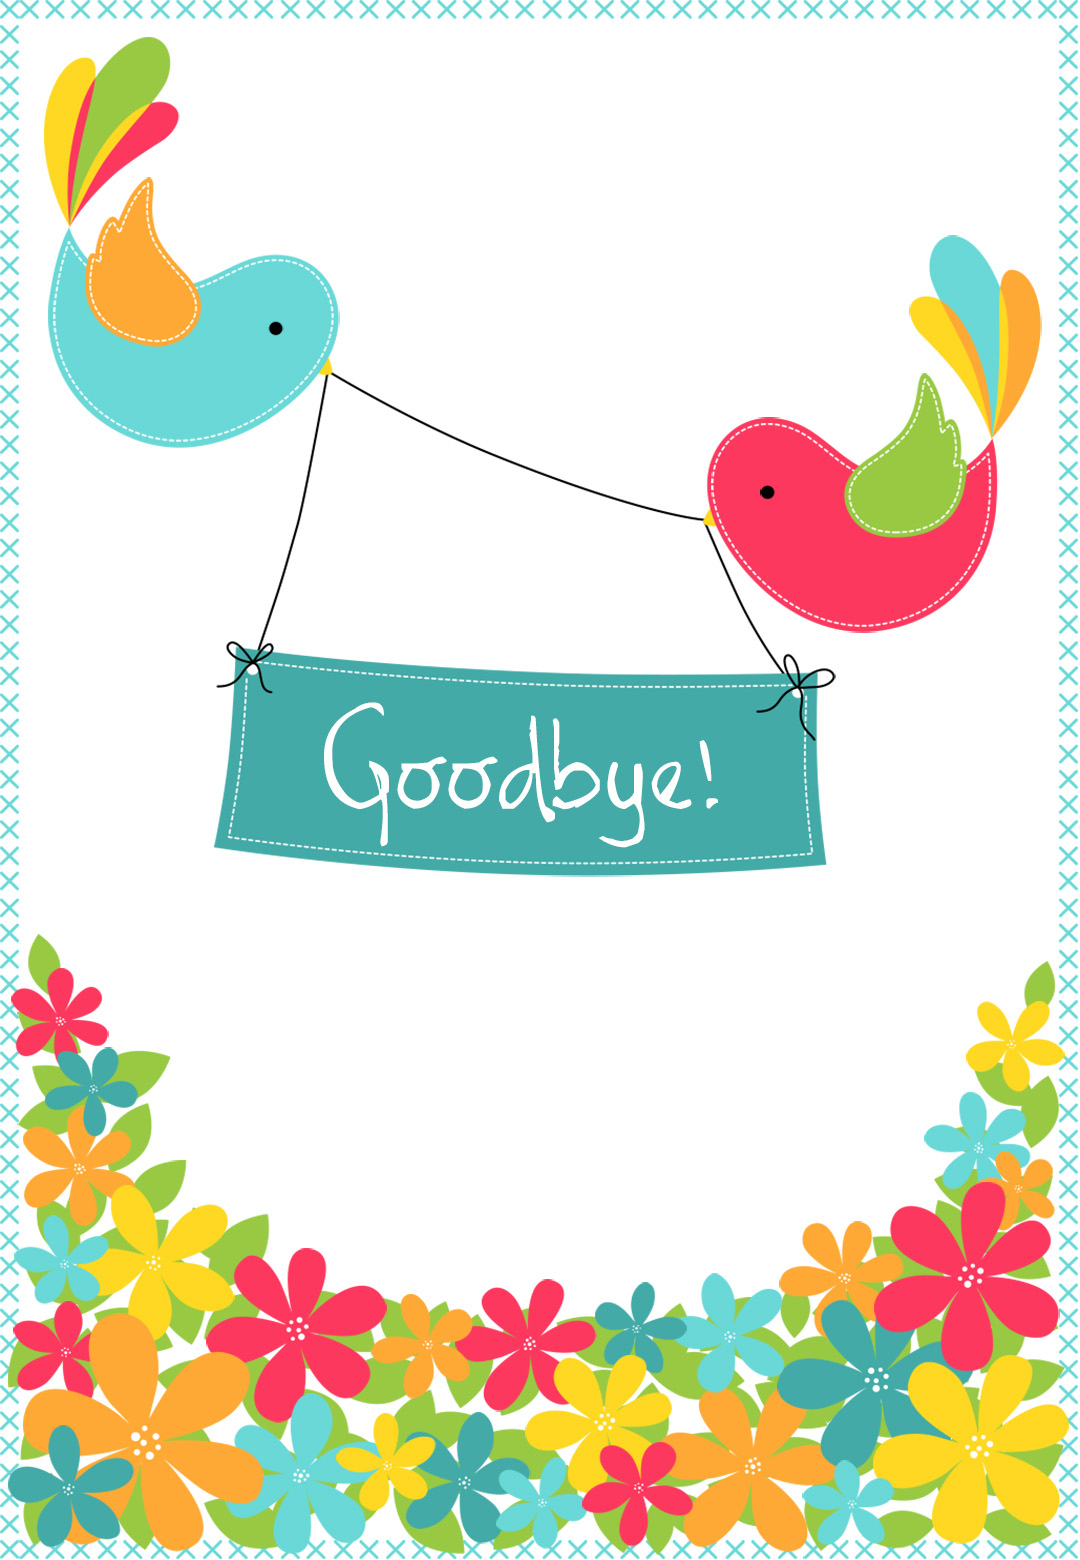 Goodbye From Your Colleagues - Free Good Luck Card   Greetings Island - Free Printable Good Luck Cards